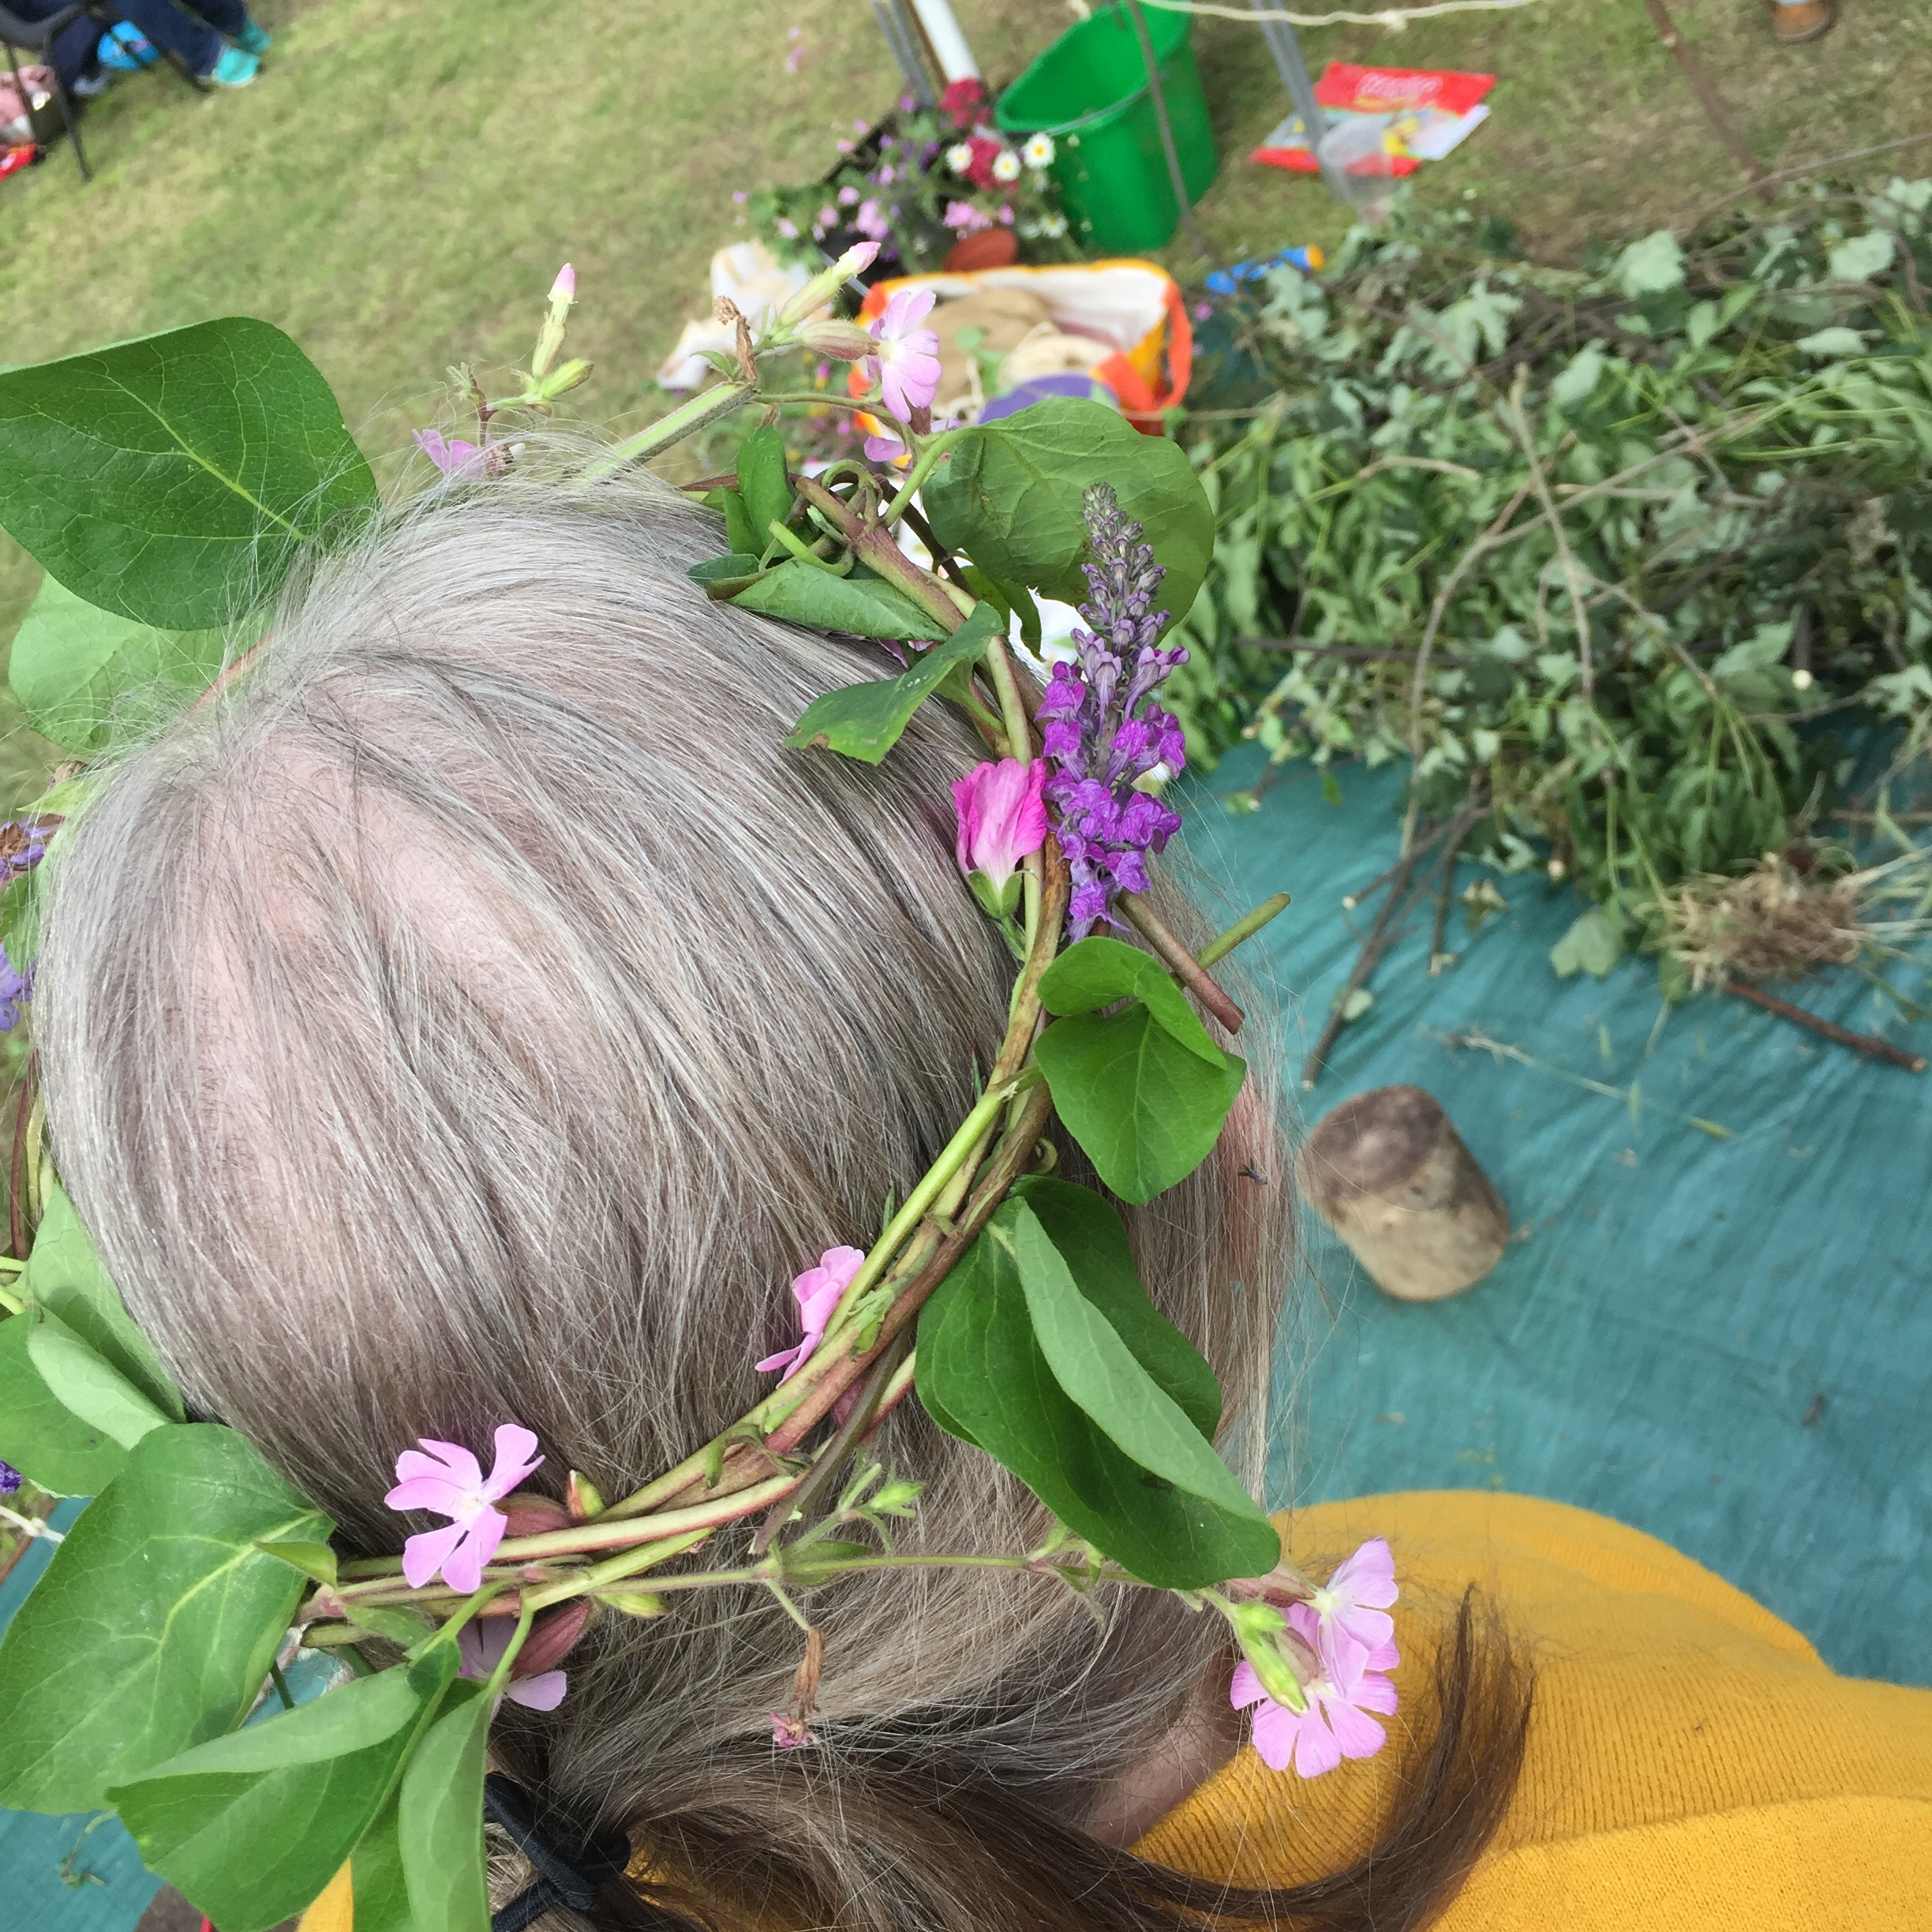 This granny enjoyed making her crown as much as her granddaughter.